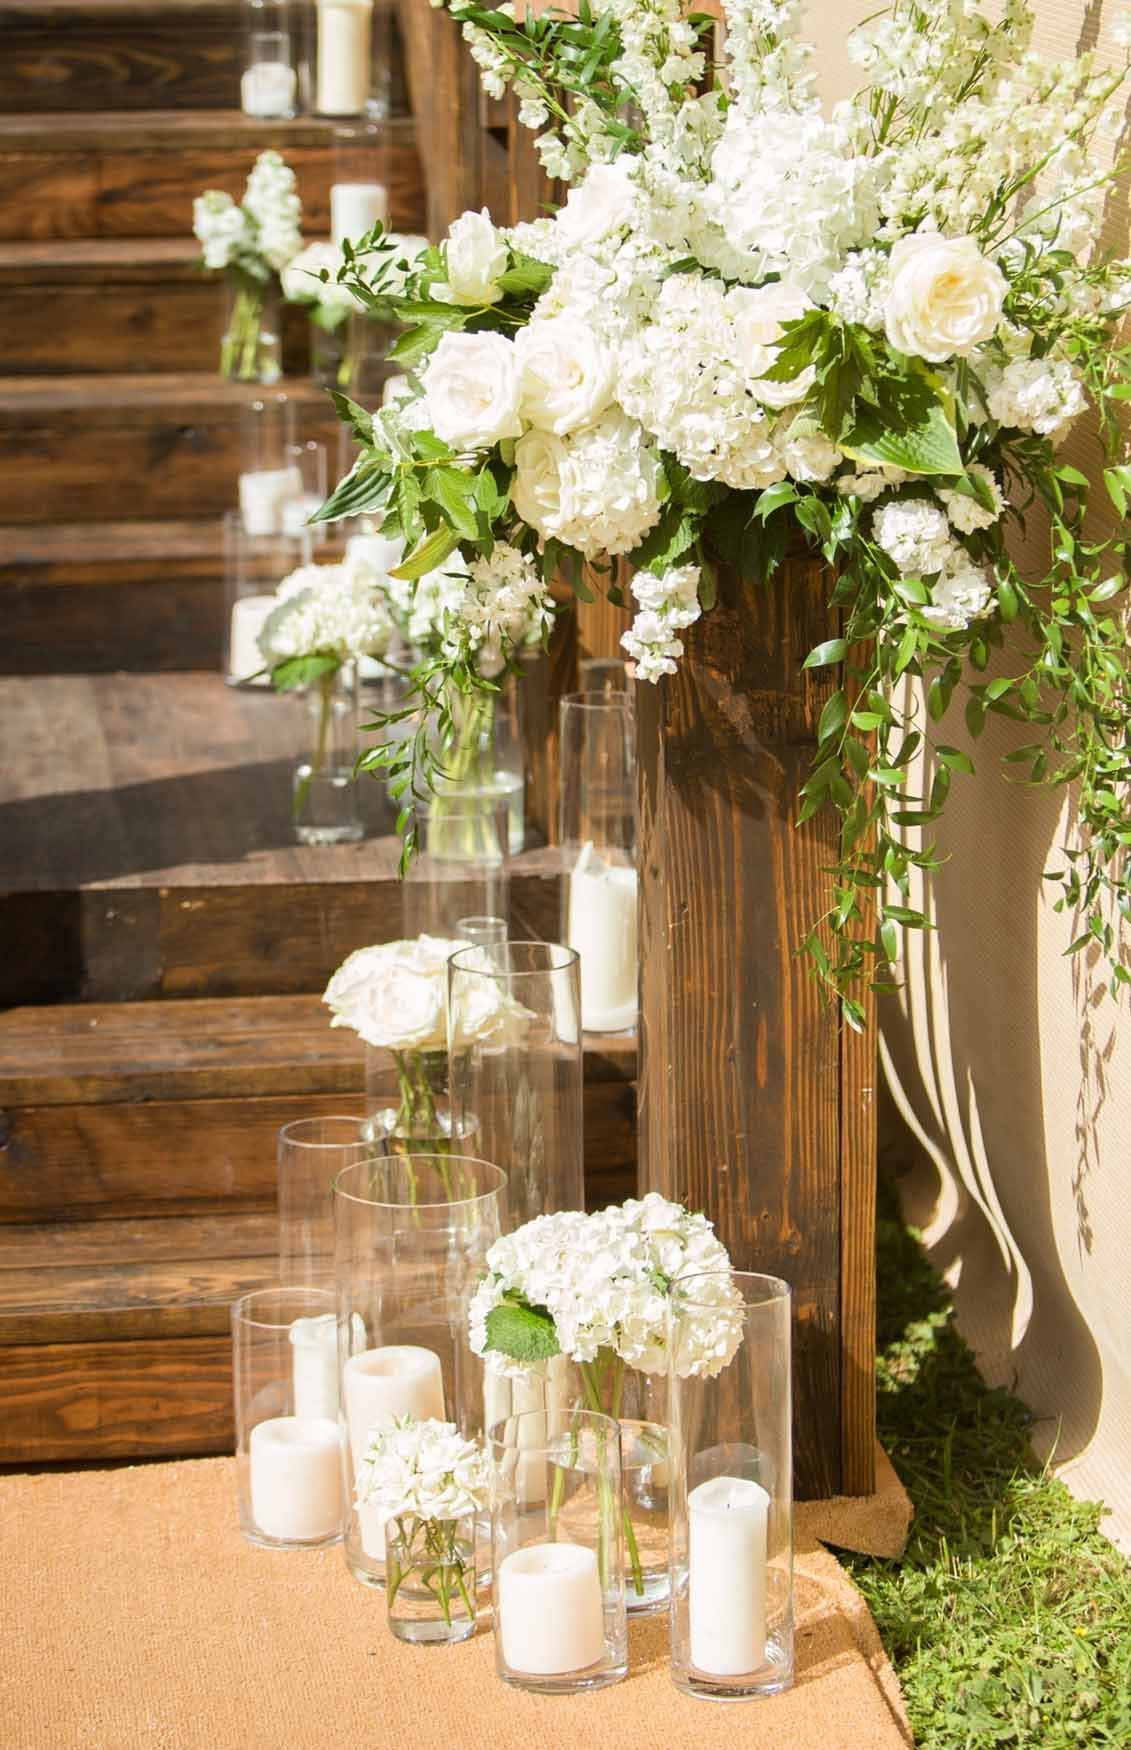 Large white flower arrangement and candles on a wooden staircase